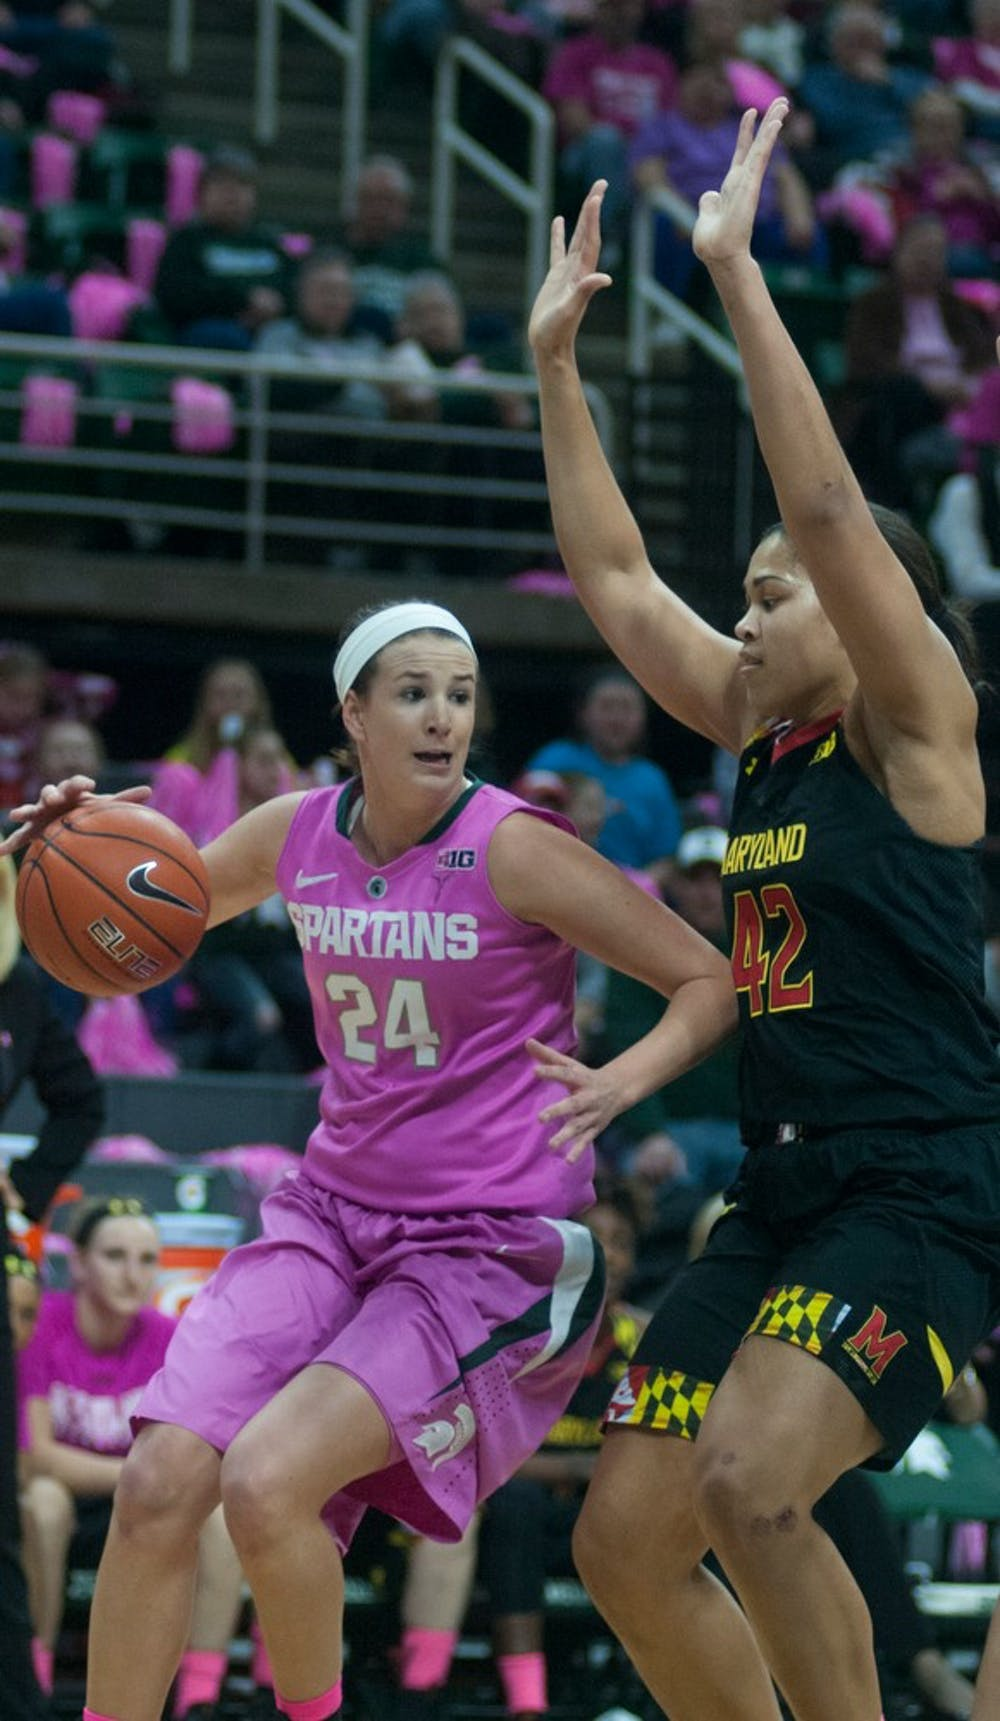 <p>Freshmen guard/forward Lexi Gussert gets around Maryland center Brionna Jones Feb. 16, 2015, during the Play4Kay Breast Cancer Awareness game against Maryland at Breslin Center. The Spartans were defeated by the Terrapins, 75-69. Hannah Levy/The State News</p>